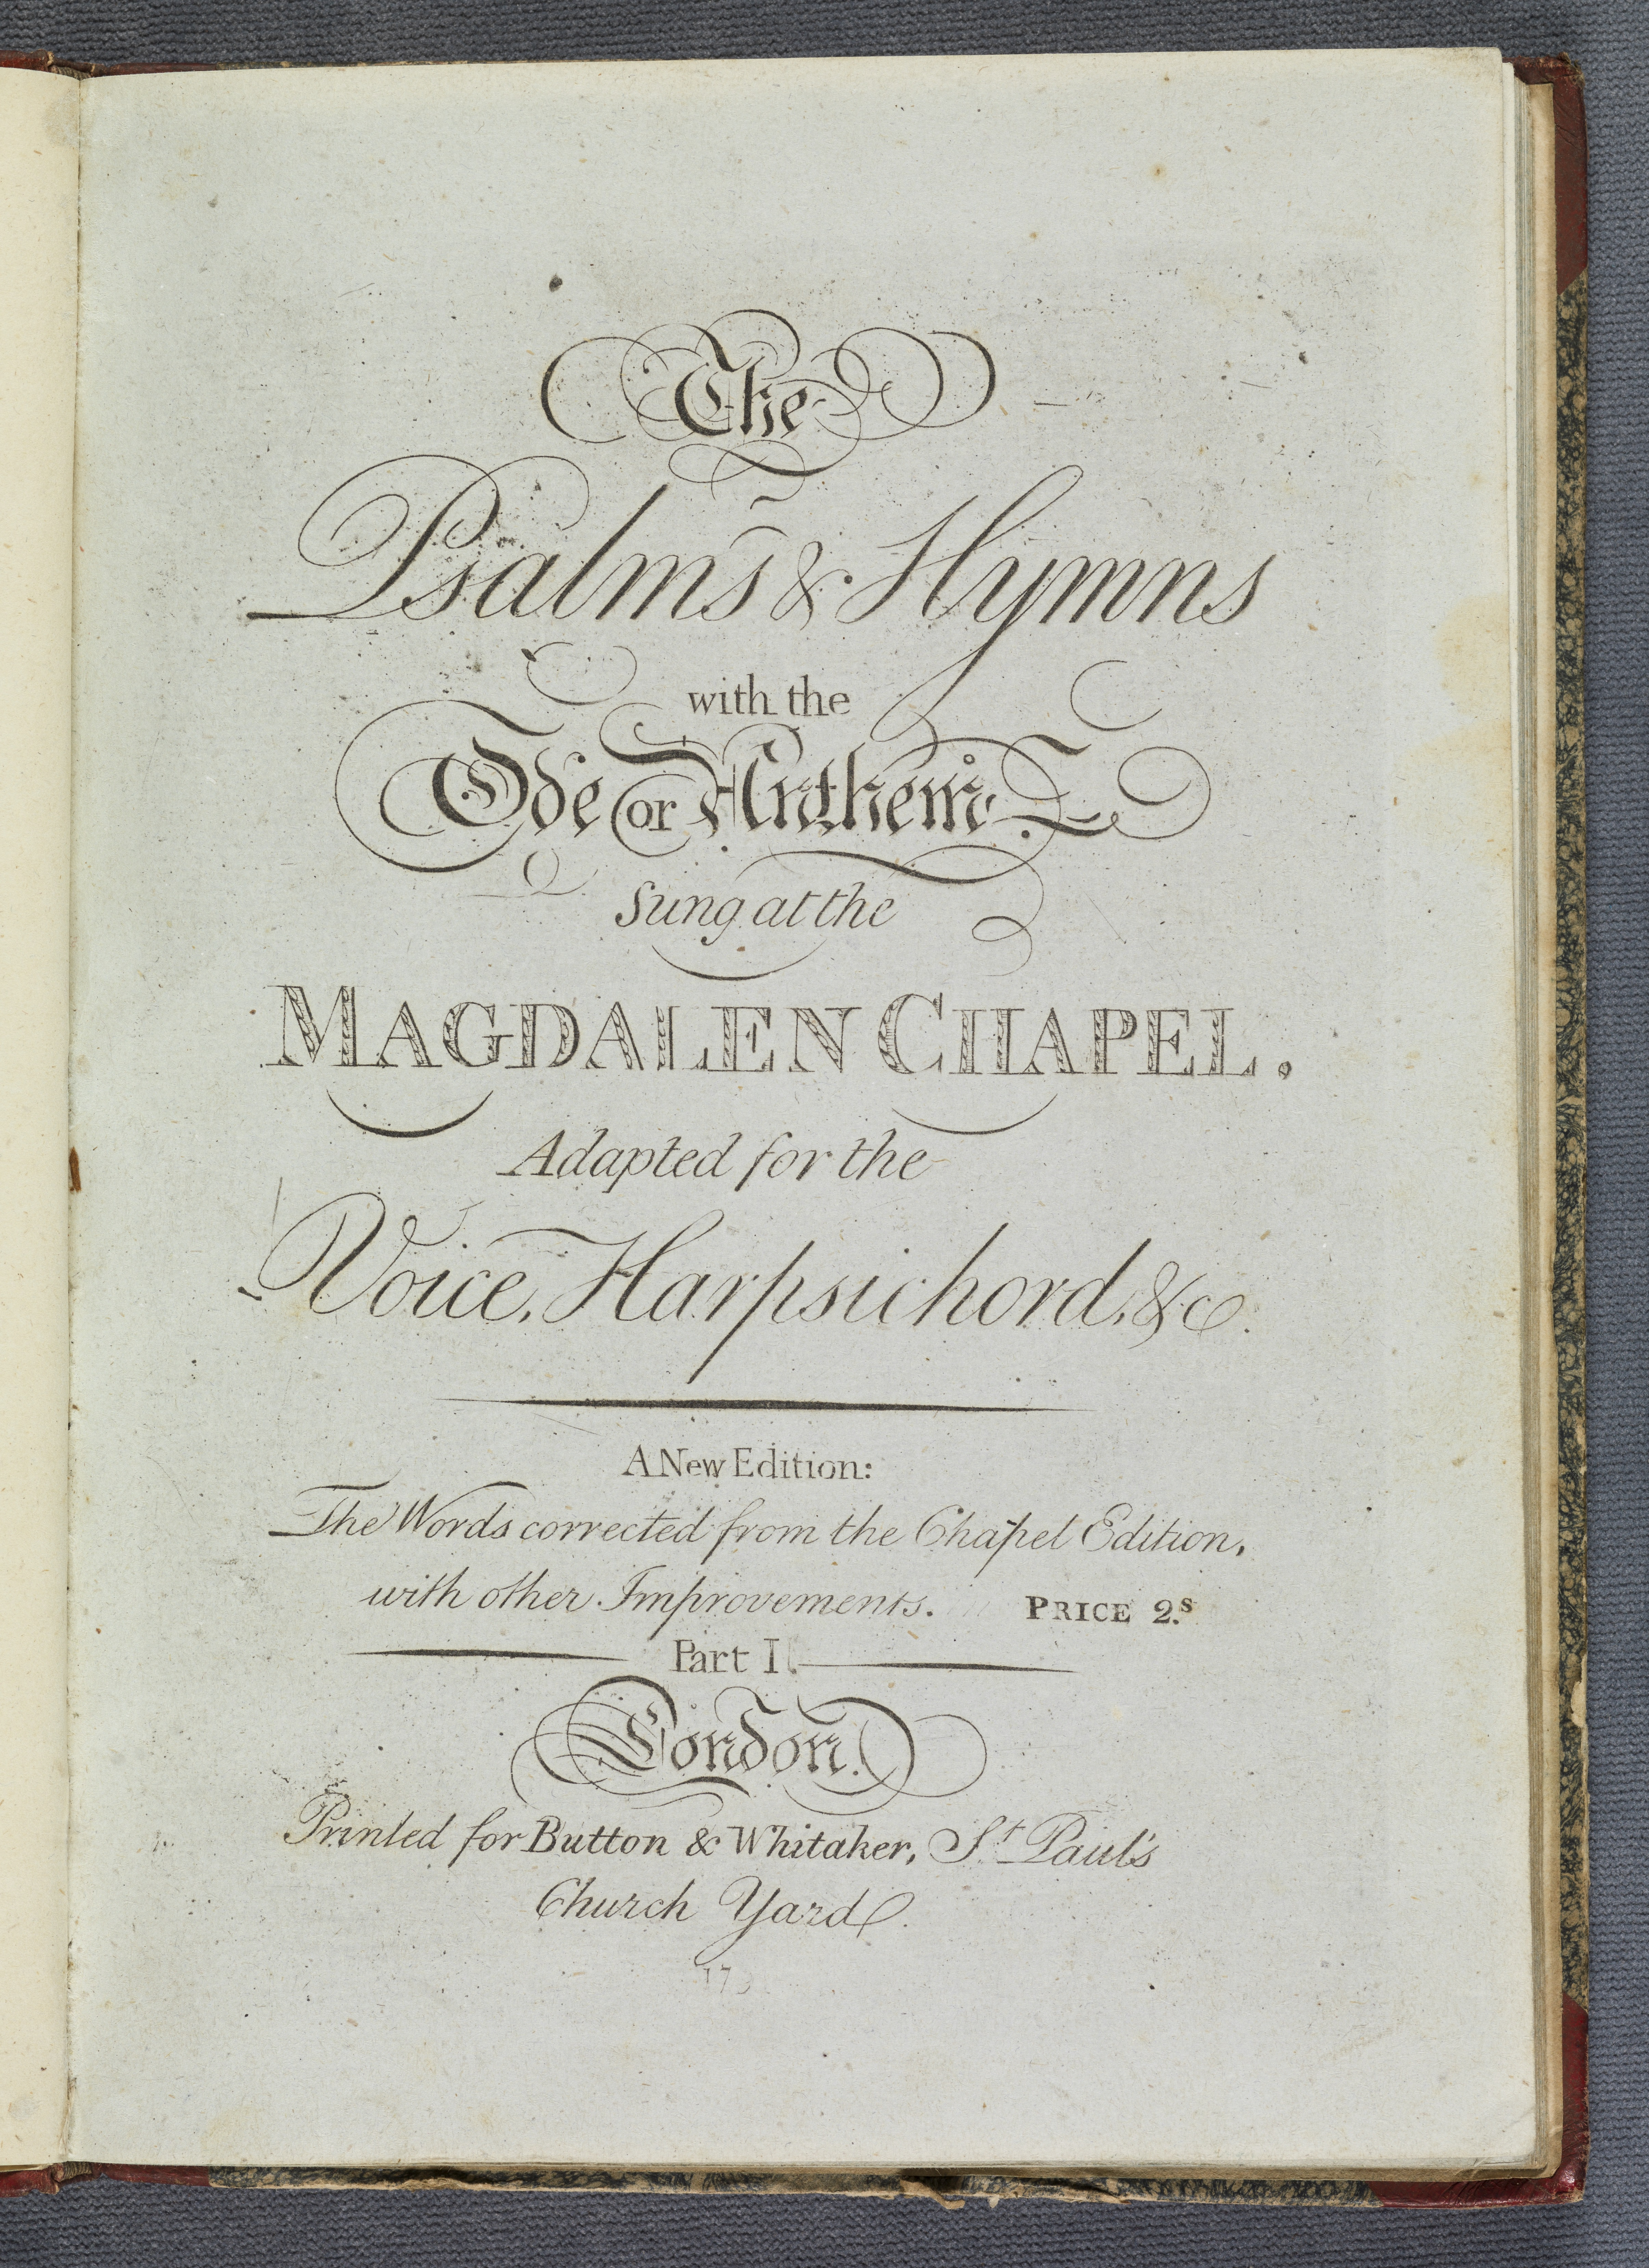 title page for The psalms & hymns with the ode or anthem